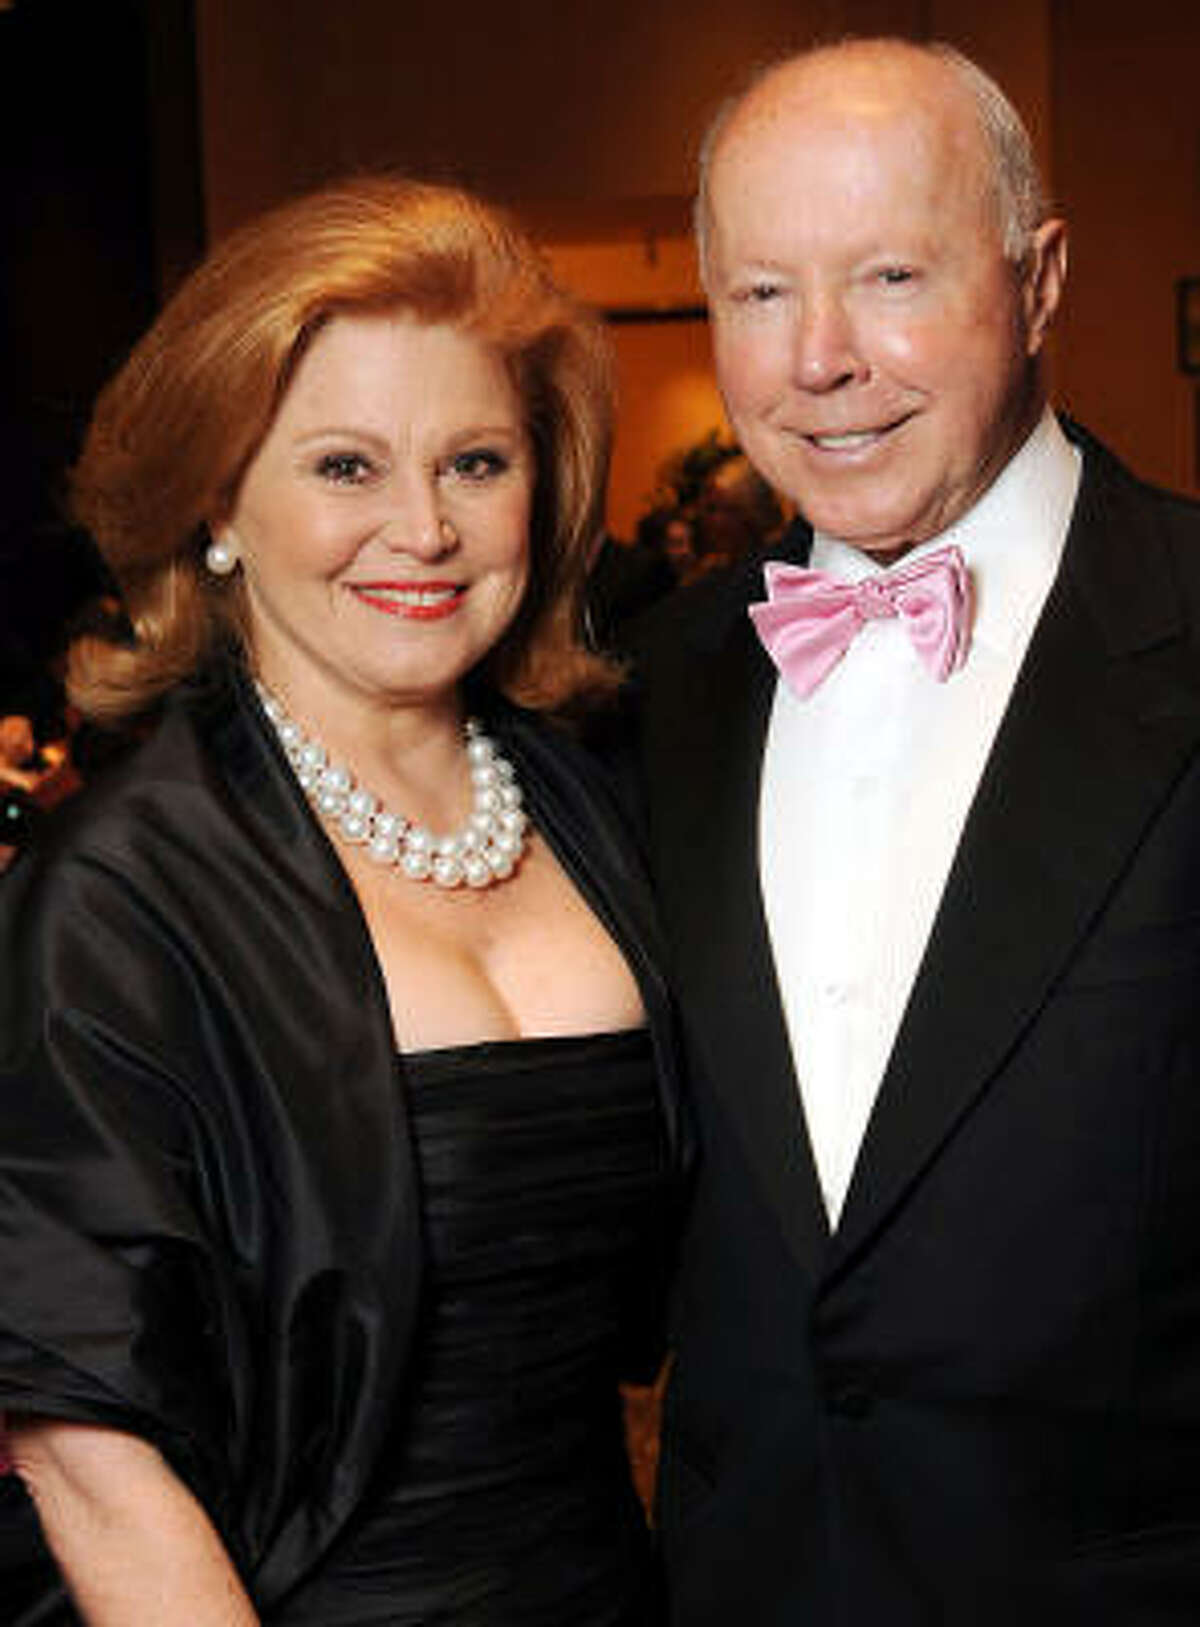 Jan and the late Dan Duncan attend the Pink Tie Gala in March. Children Dannine Avara, Scott Duncan, Milane Frantz and Randa Williams tied at No. 101 on the Forbes list. (Their photos were unavailable.)